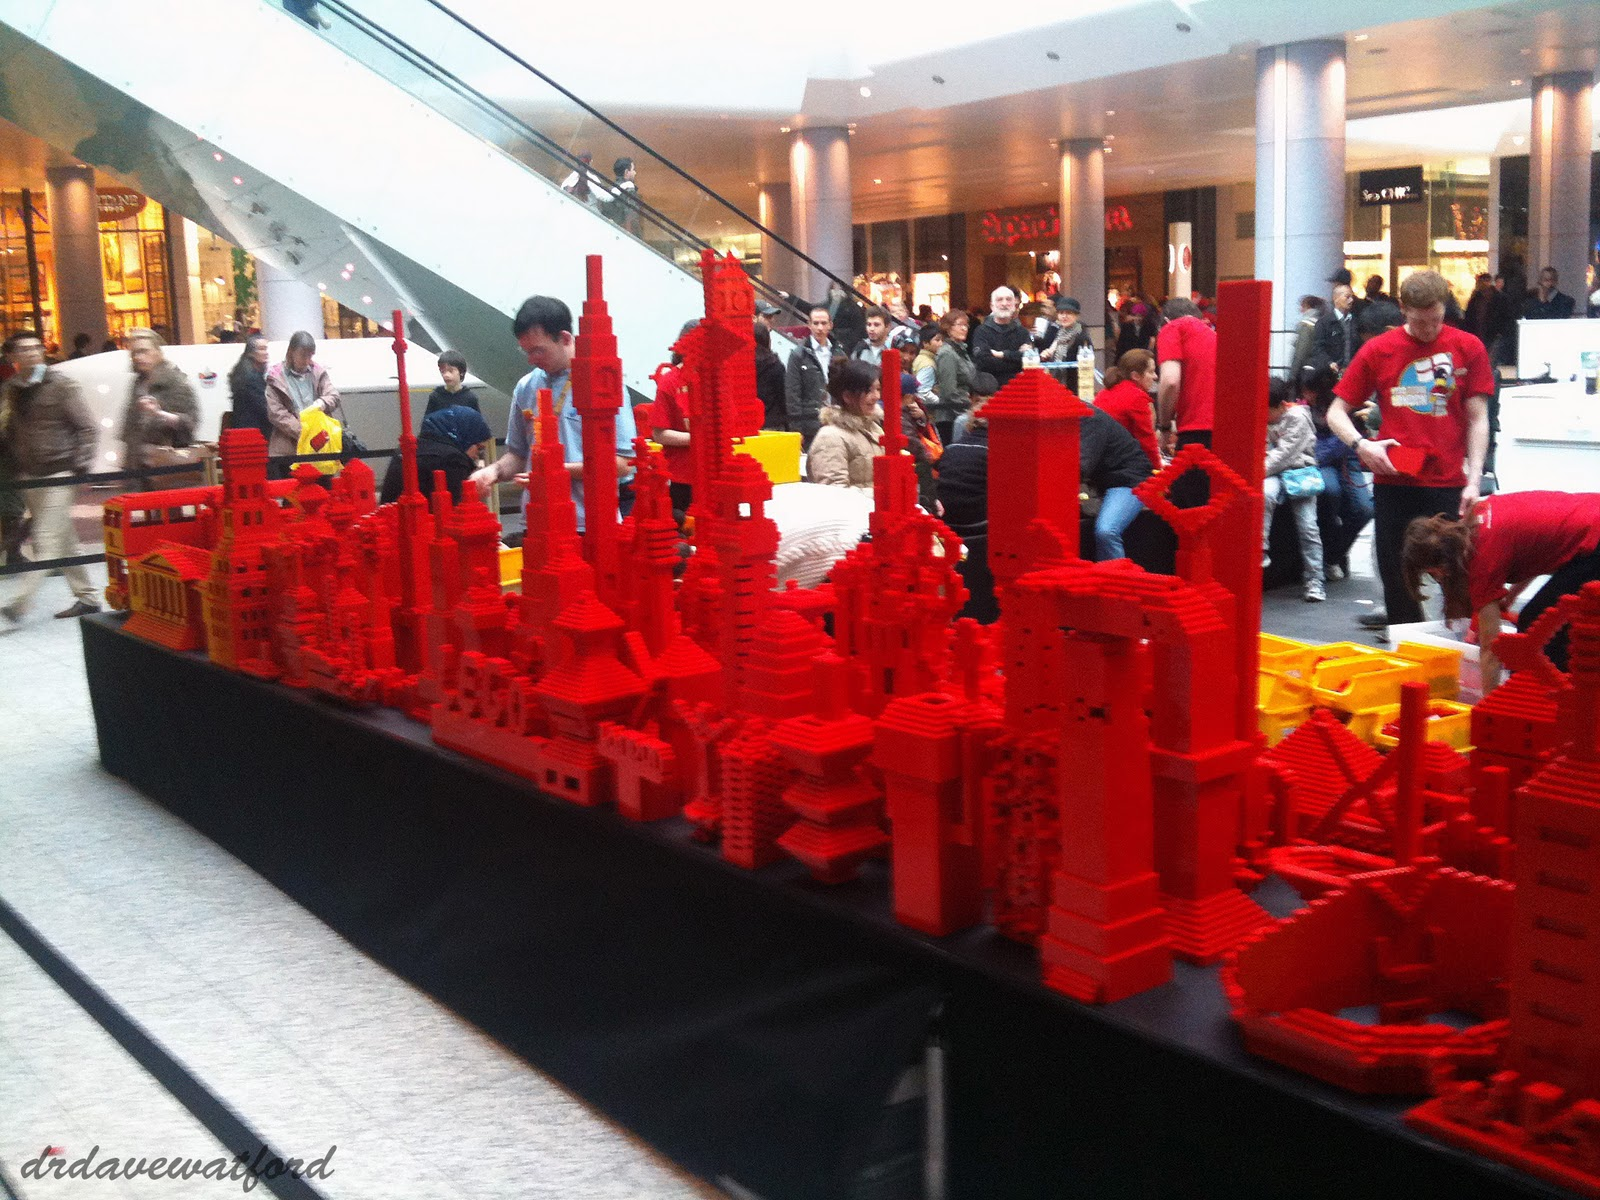 Gimme lego grand opening - Boutique lego londres ...